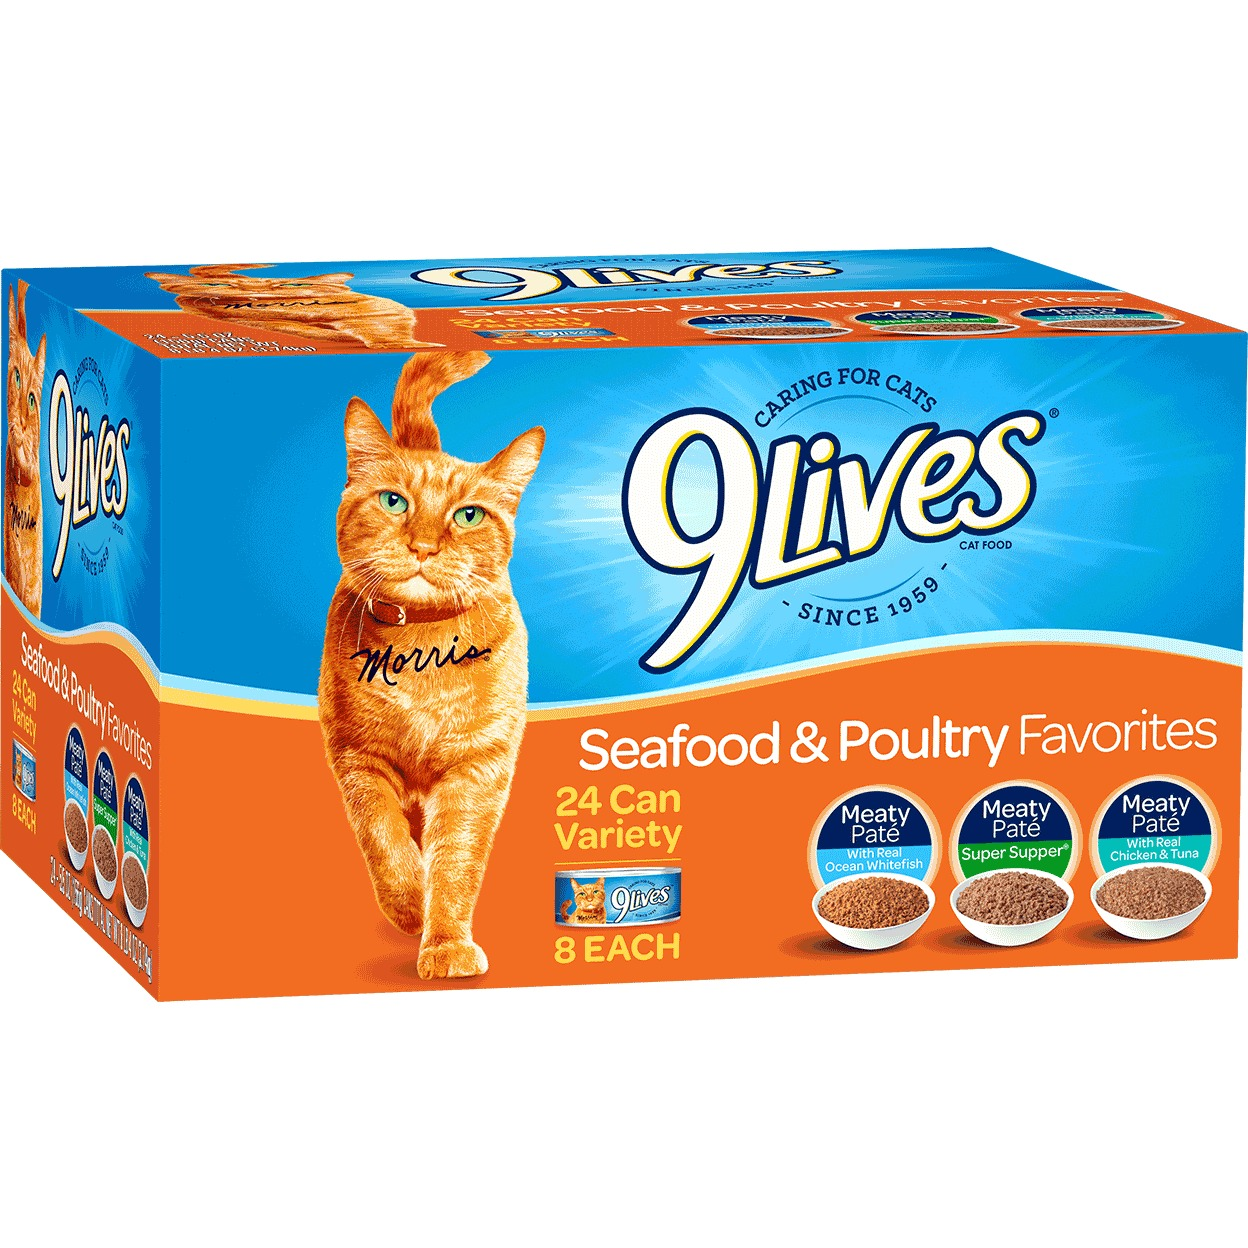 9Lives Seafood & Poultry Favorites Wet Cat Food Variety Pack, 5.5 Oz. Cans (24 Pack) by Big Heart Pet Brands